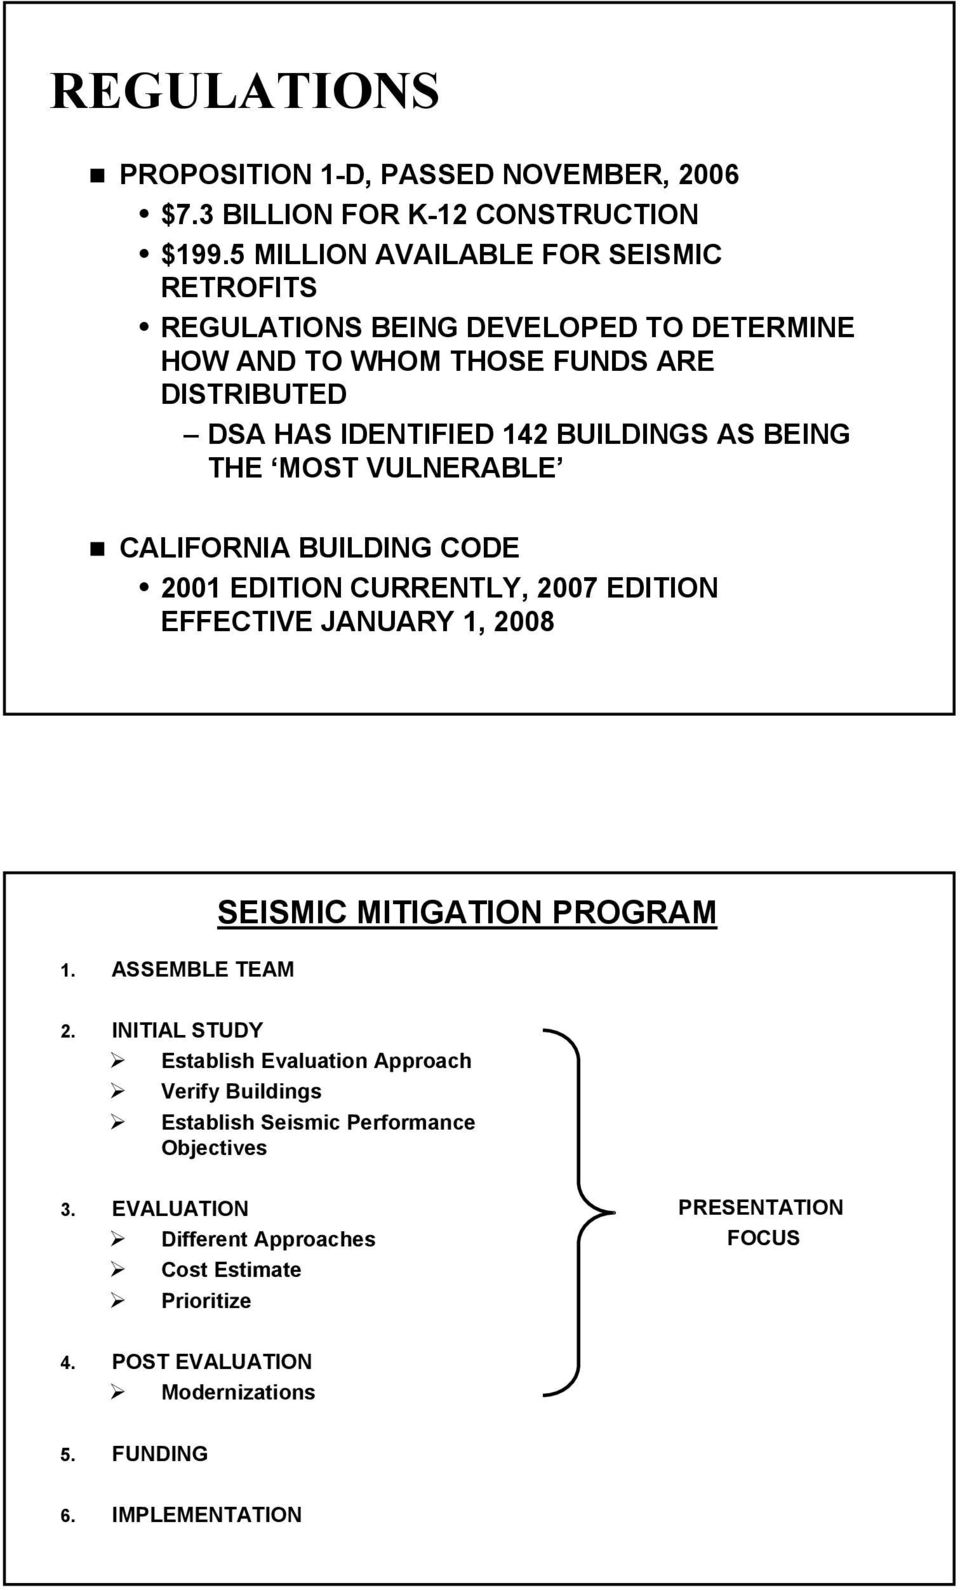 BEING THE MOST VULNERABLE CALIFORNIA BUILDING CODE 2001 EDITION CURRENTLY, 2007 EDITION EFFECTIVE JANUARY 1, 2008 1. ASSEMBLE TEAM SEISMIC MITIGATION PROGRAM 2.